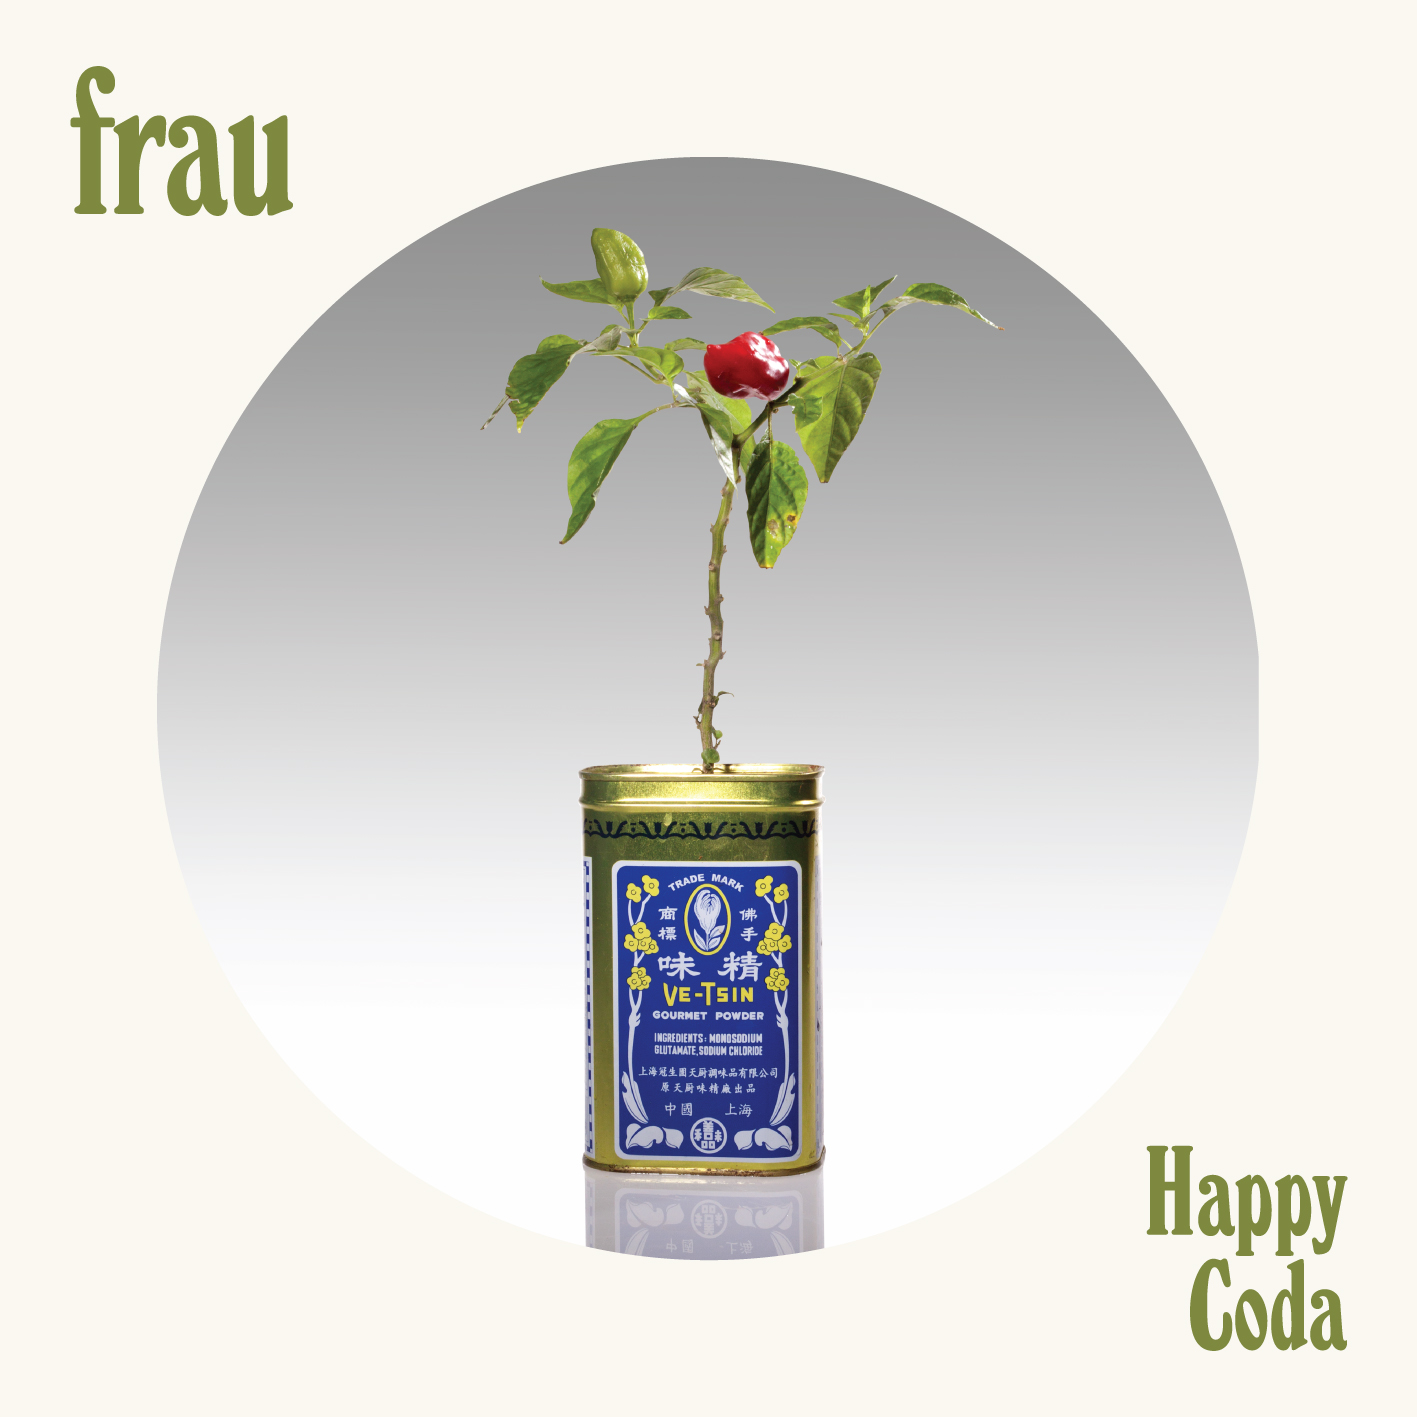 frau-happy-coda